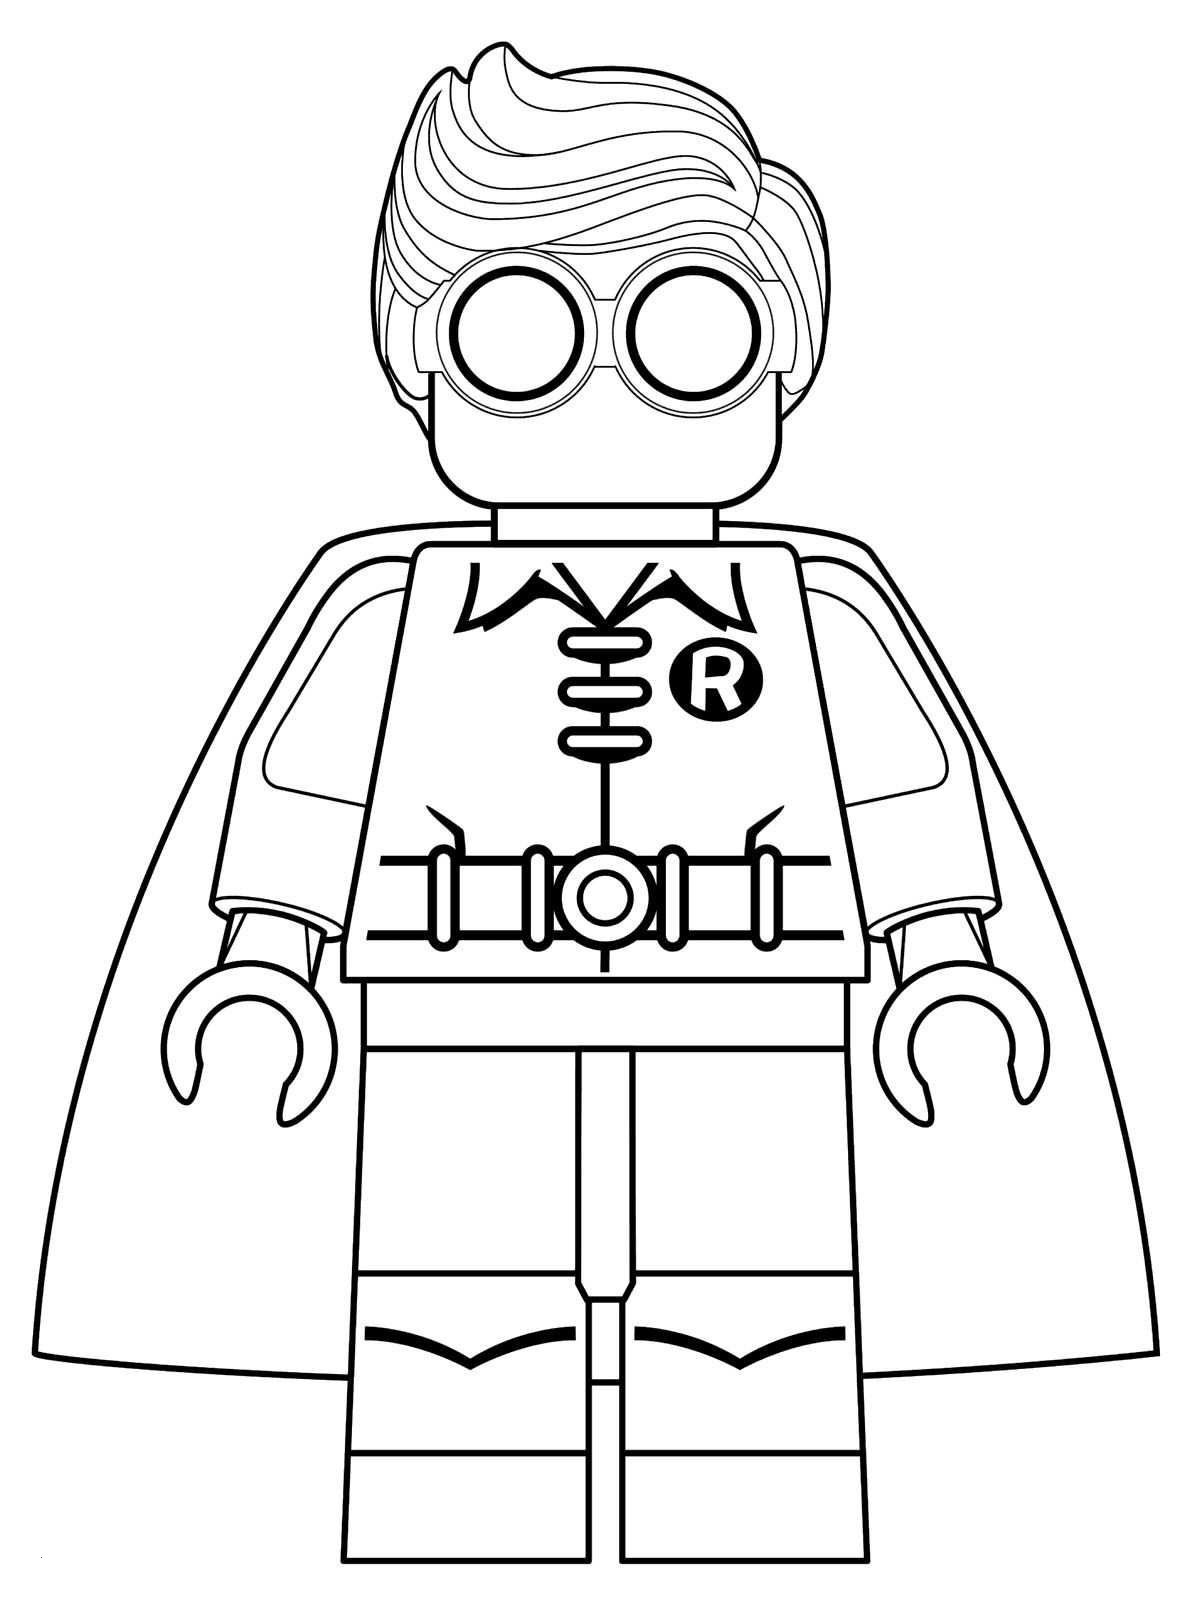 Ausmalbilder Lego Frisch 26 Lego Coloring Pages Gallery Coloring Sheets Galerie